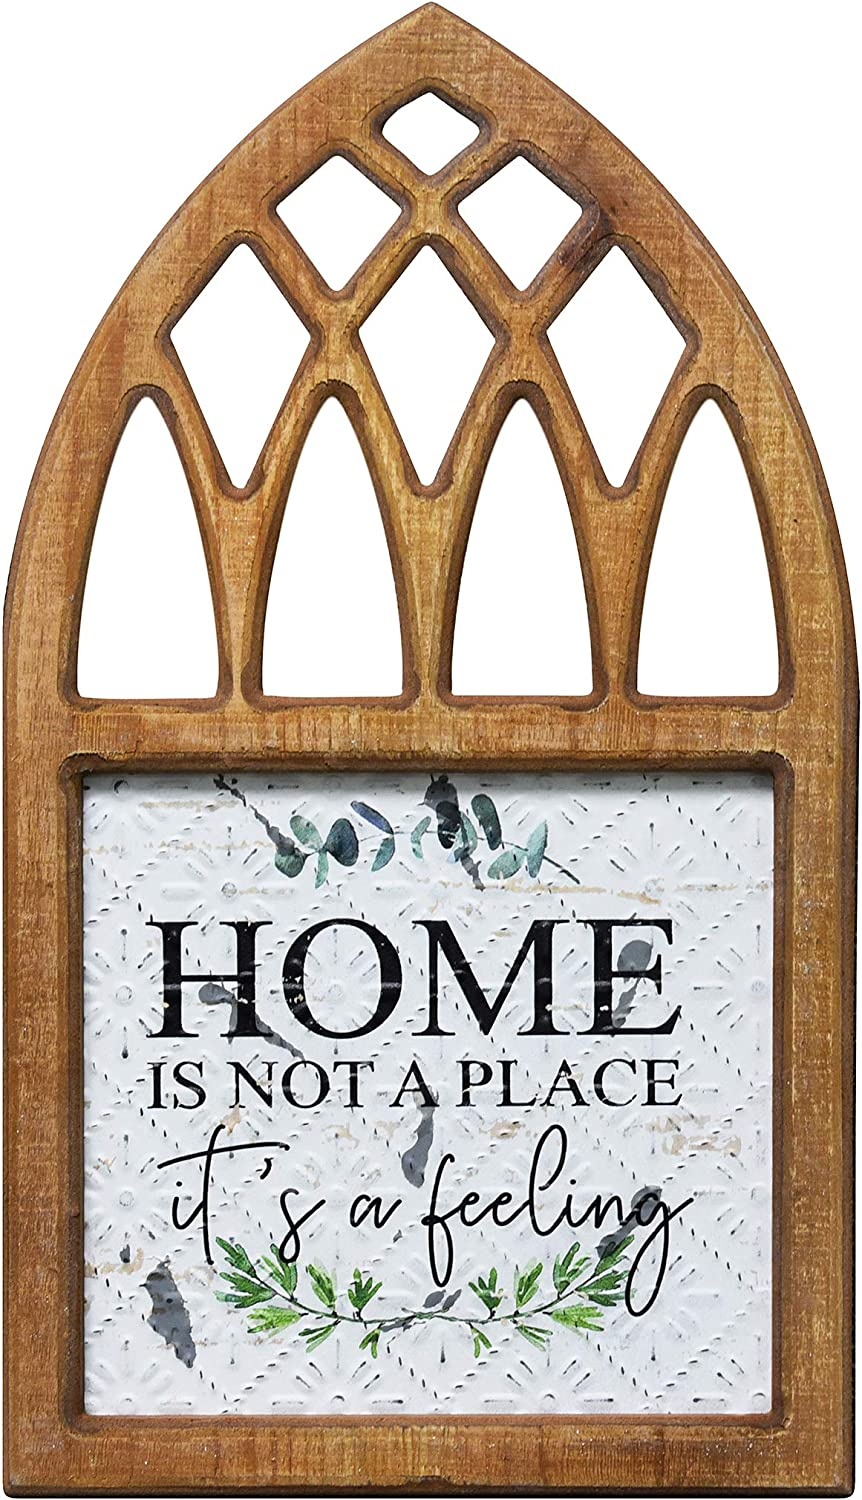 PrideCreation Wood Home Wall Signs, 16x8.7 inch Rustic Farmhouse Metal Wall Hanging Decor Art, Inset Embossed Decorative Sign Gift for Living Dining Room Bedroom - Home Is Not a Place It's a Feeling